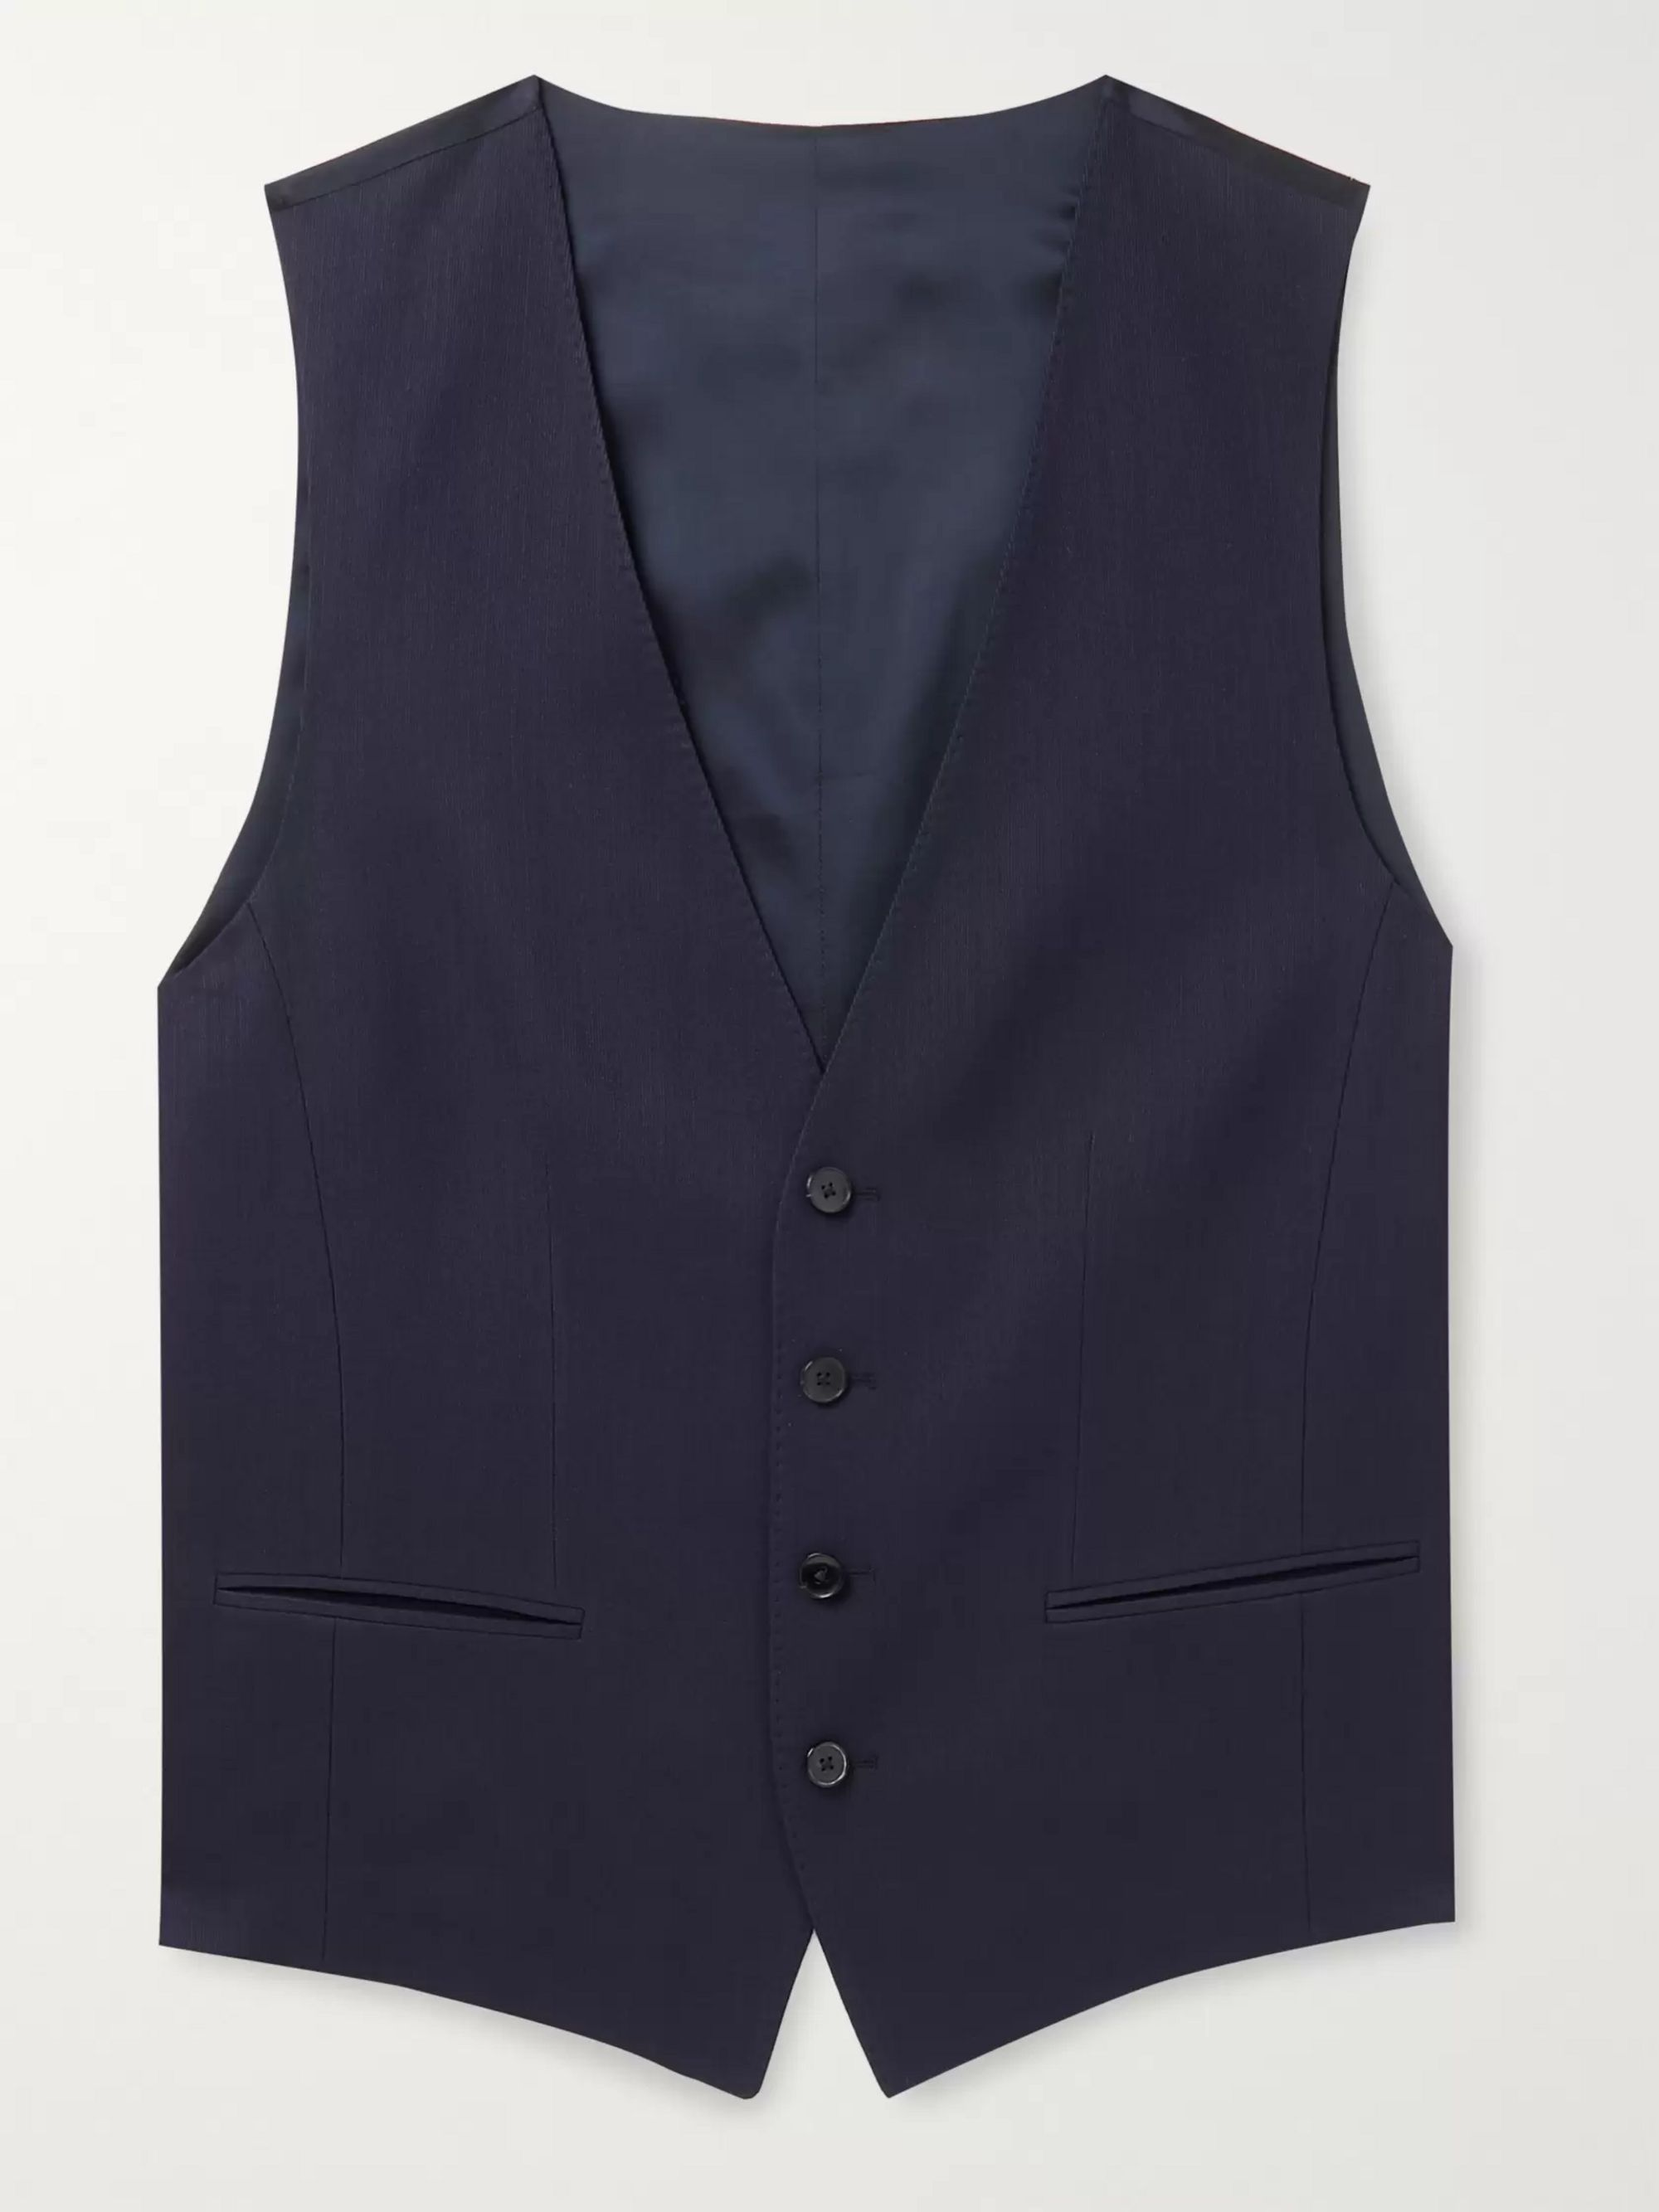 Hugo Boss Huge/Genius Slim-Fit Nailhead Wool-Blend Waistcoat